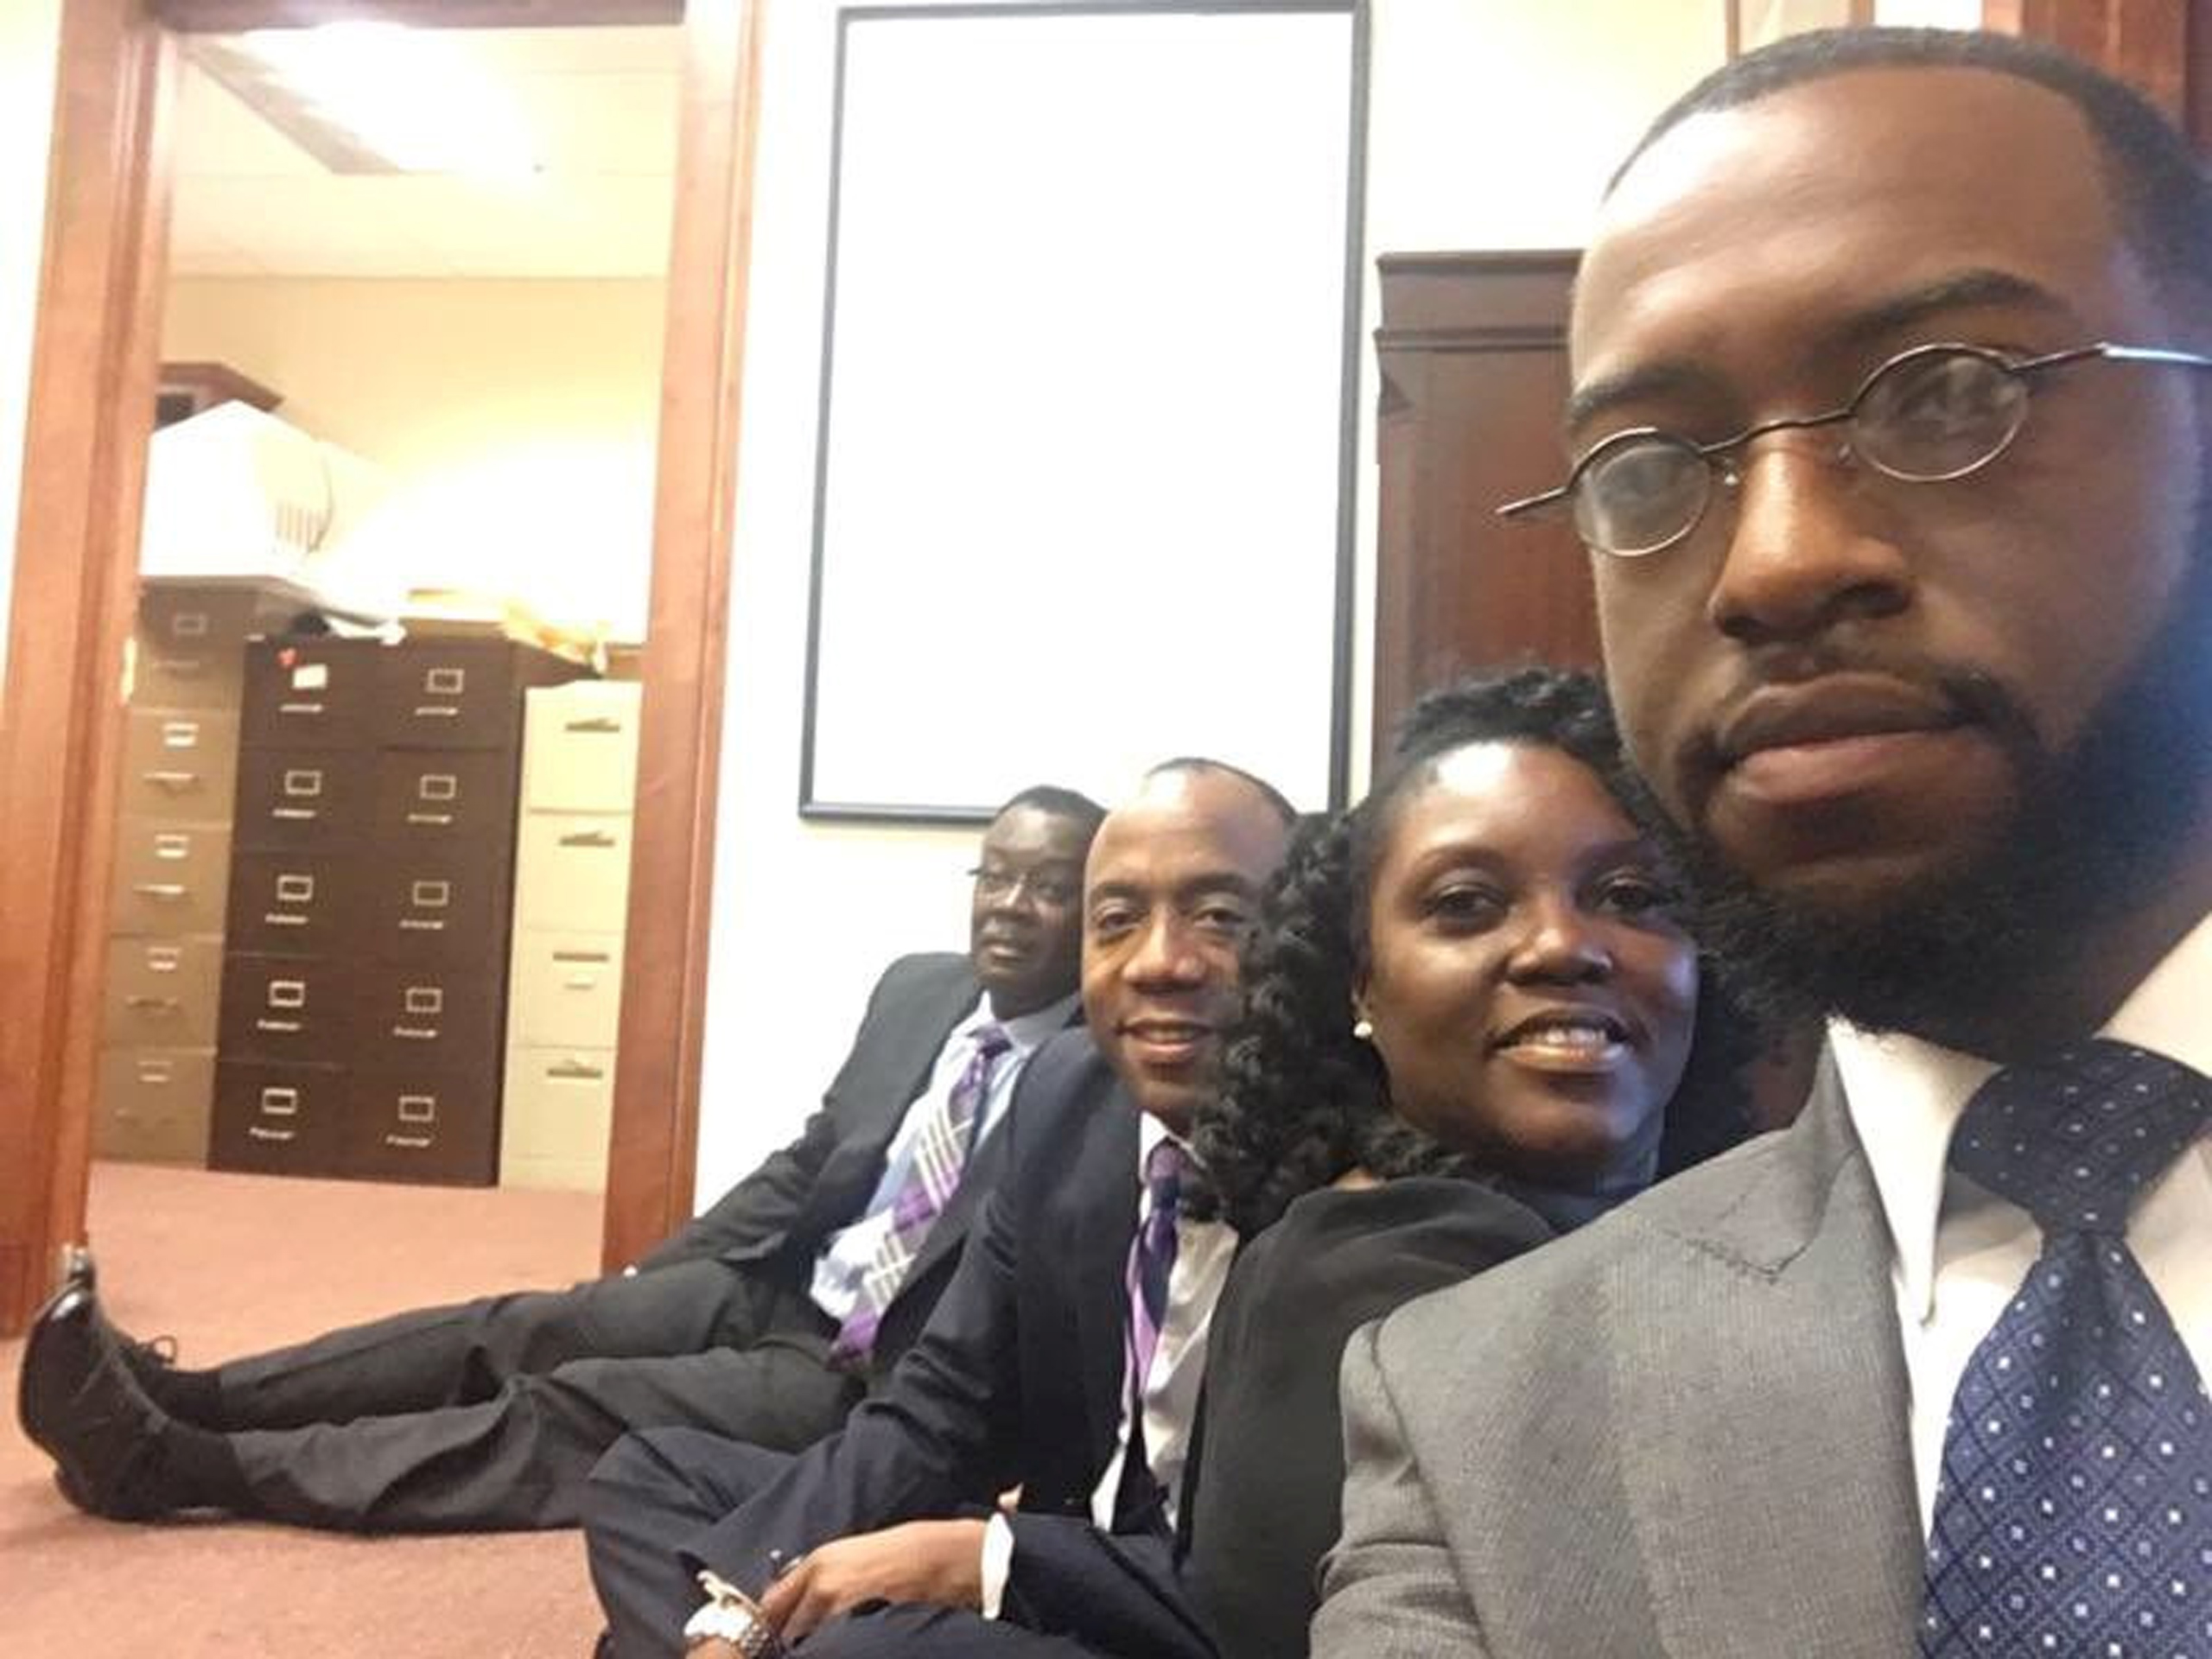 At the N.A.A.C.P. sit-in in the Mobile, Ala., office of Senator Jeff Sessions on Tuesday were members including Benard Simelton, left, the president of the group's Alabama State Conference, and Cornell William Brooks, second from left, its national president.